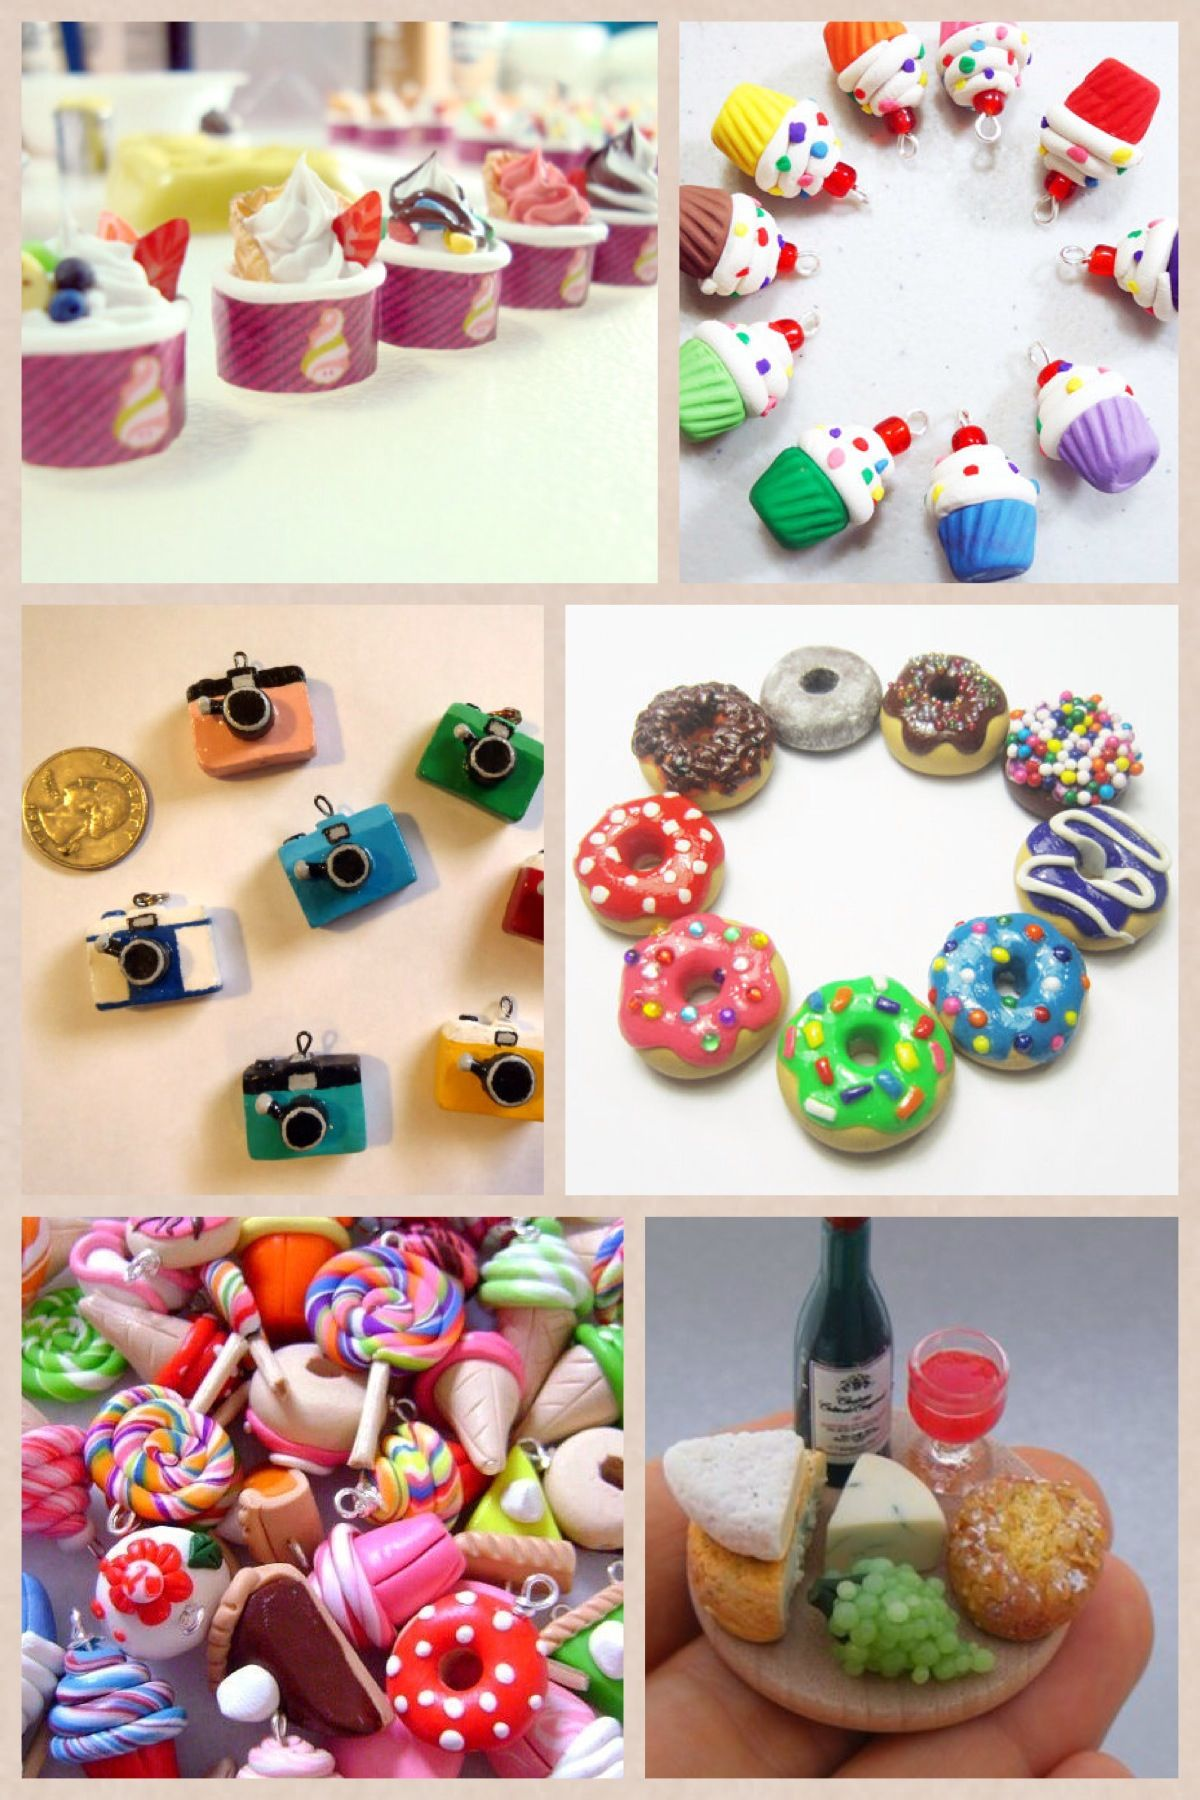 Polymer Clay Tutorial 6 Ways To Make Clay Bracelets: Polymer Clay Charms (I LOVE THE MENCHIE'S CHARMS OMG :3